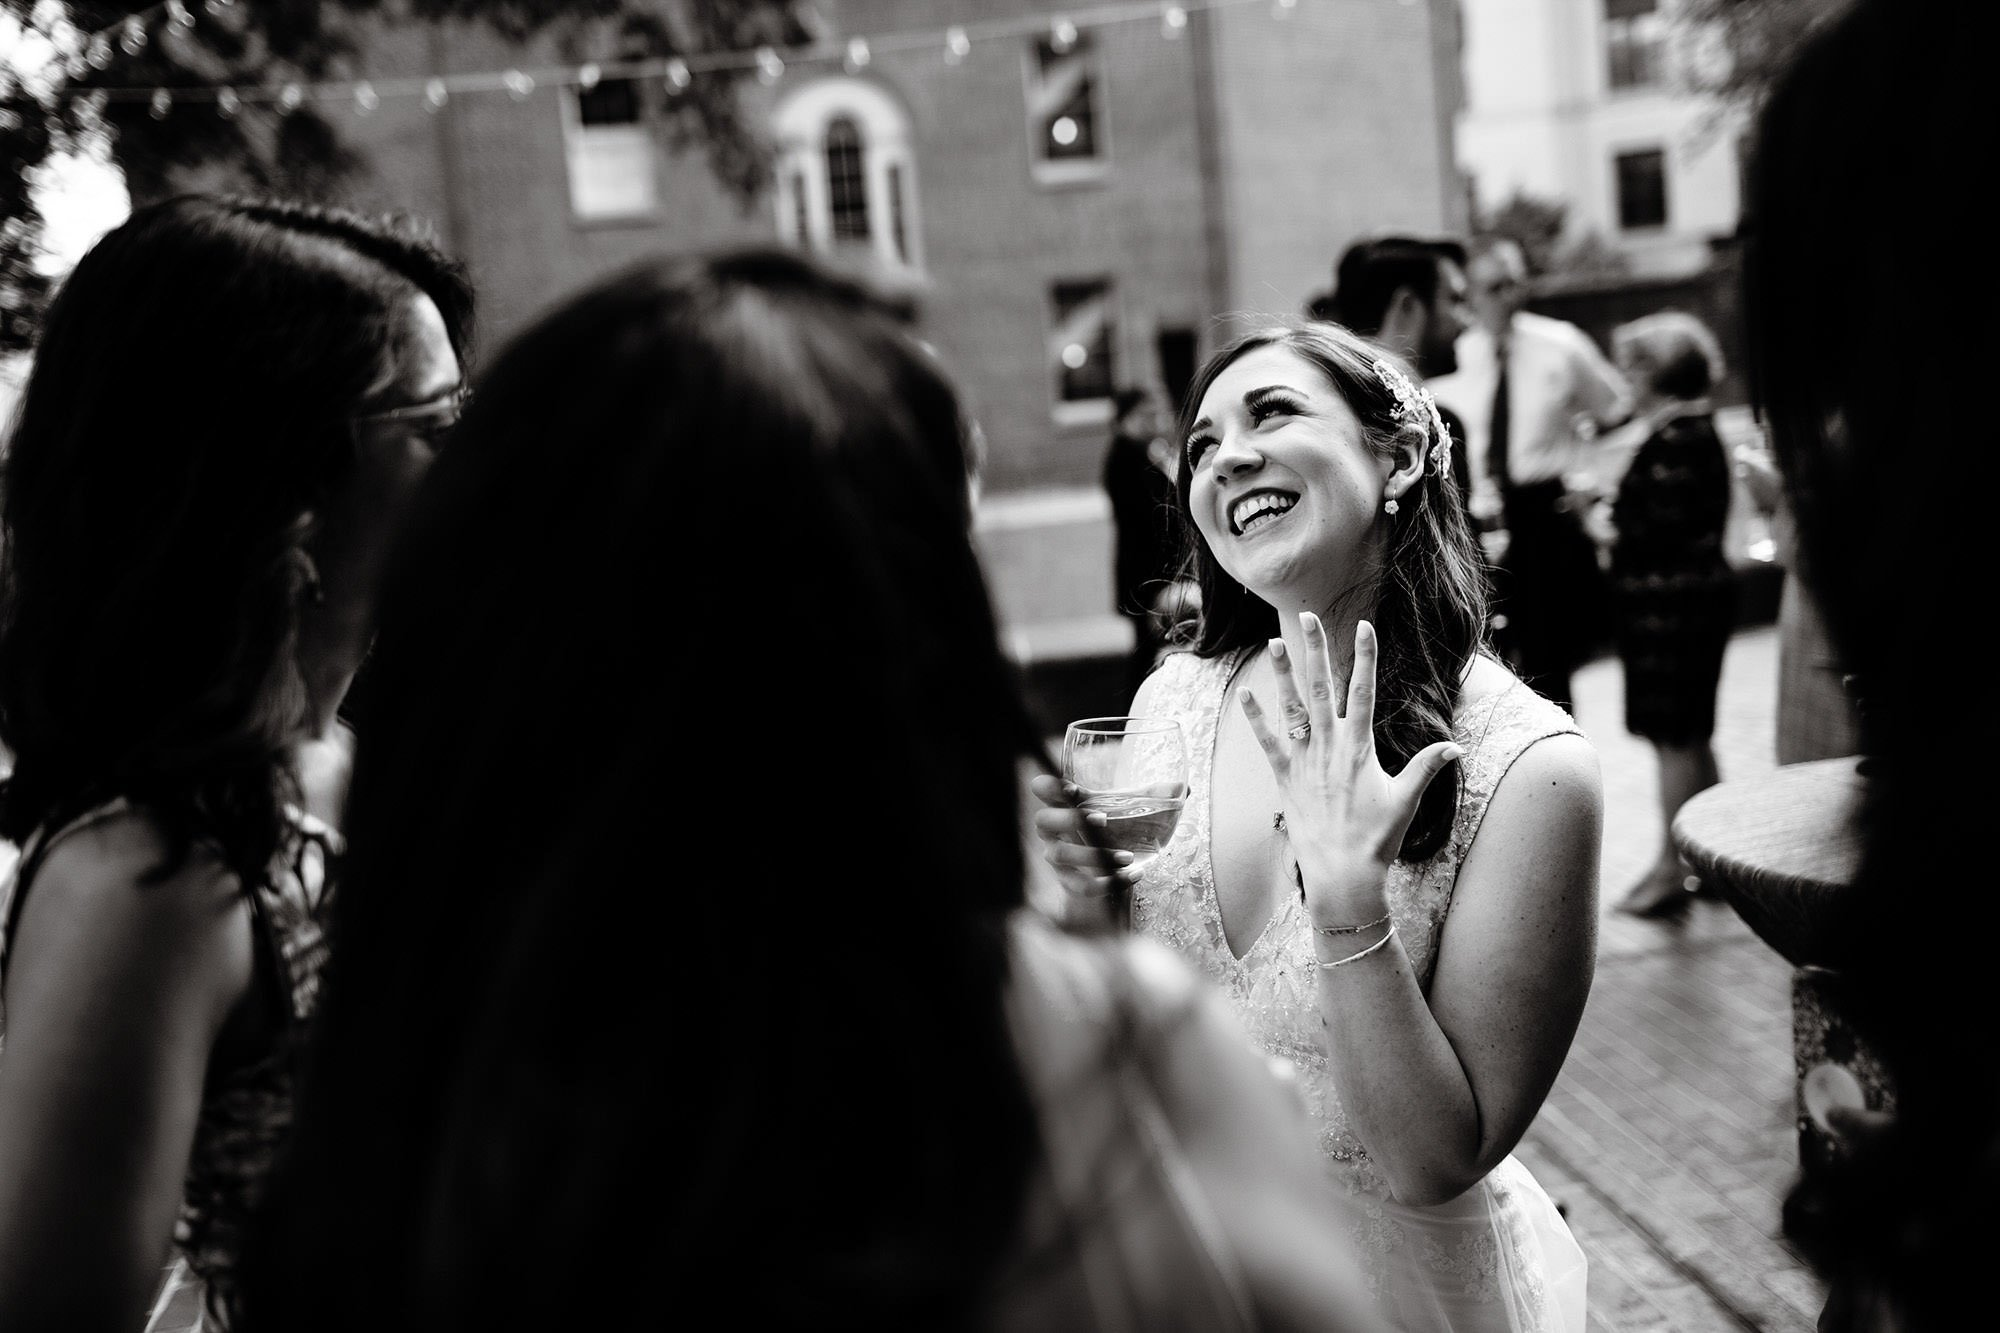 The bride shows off her wedding ring following the ceremony at American Institute of Architects in Washington, DC.